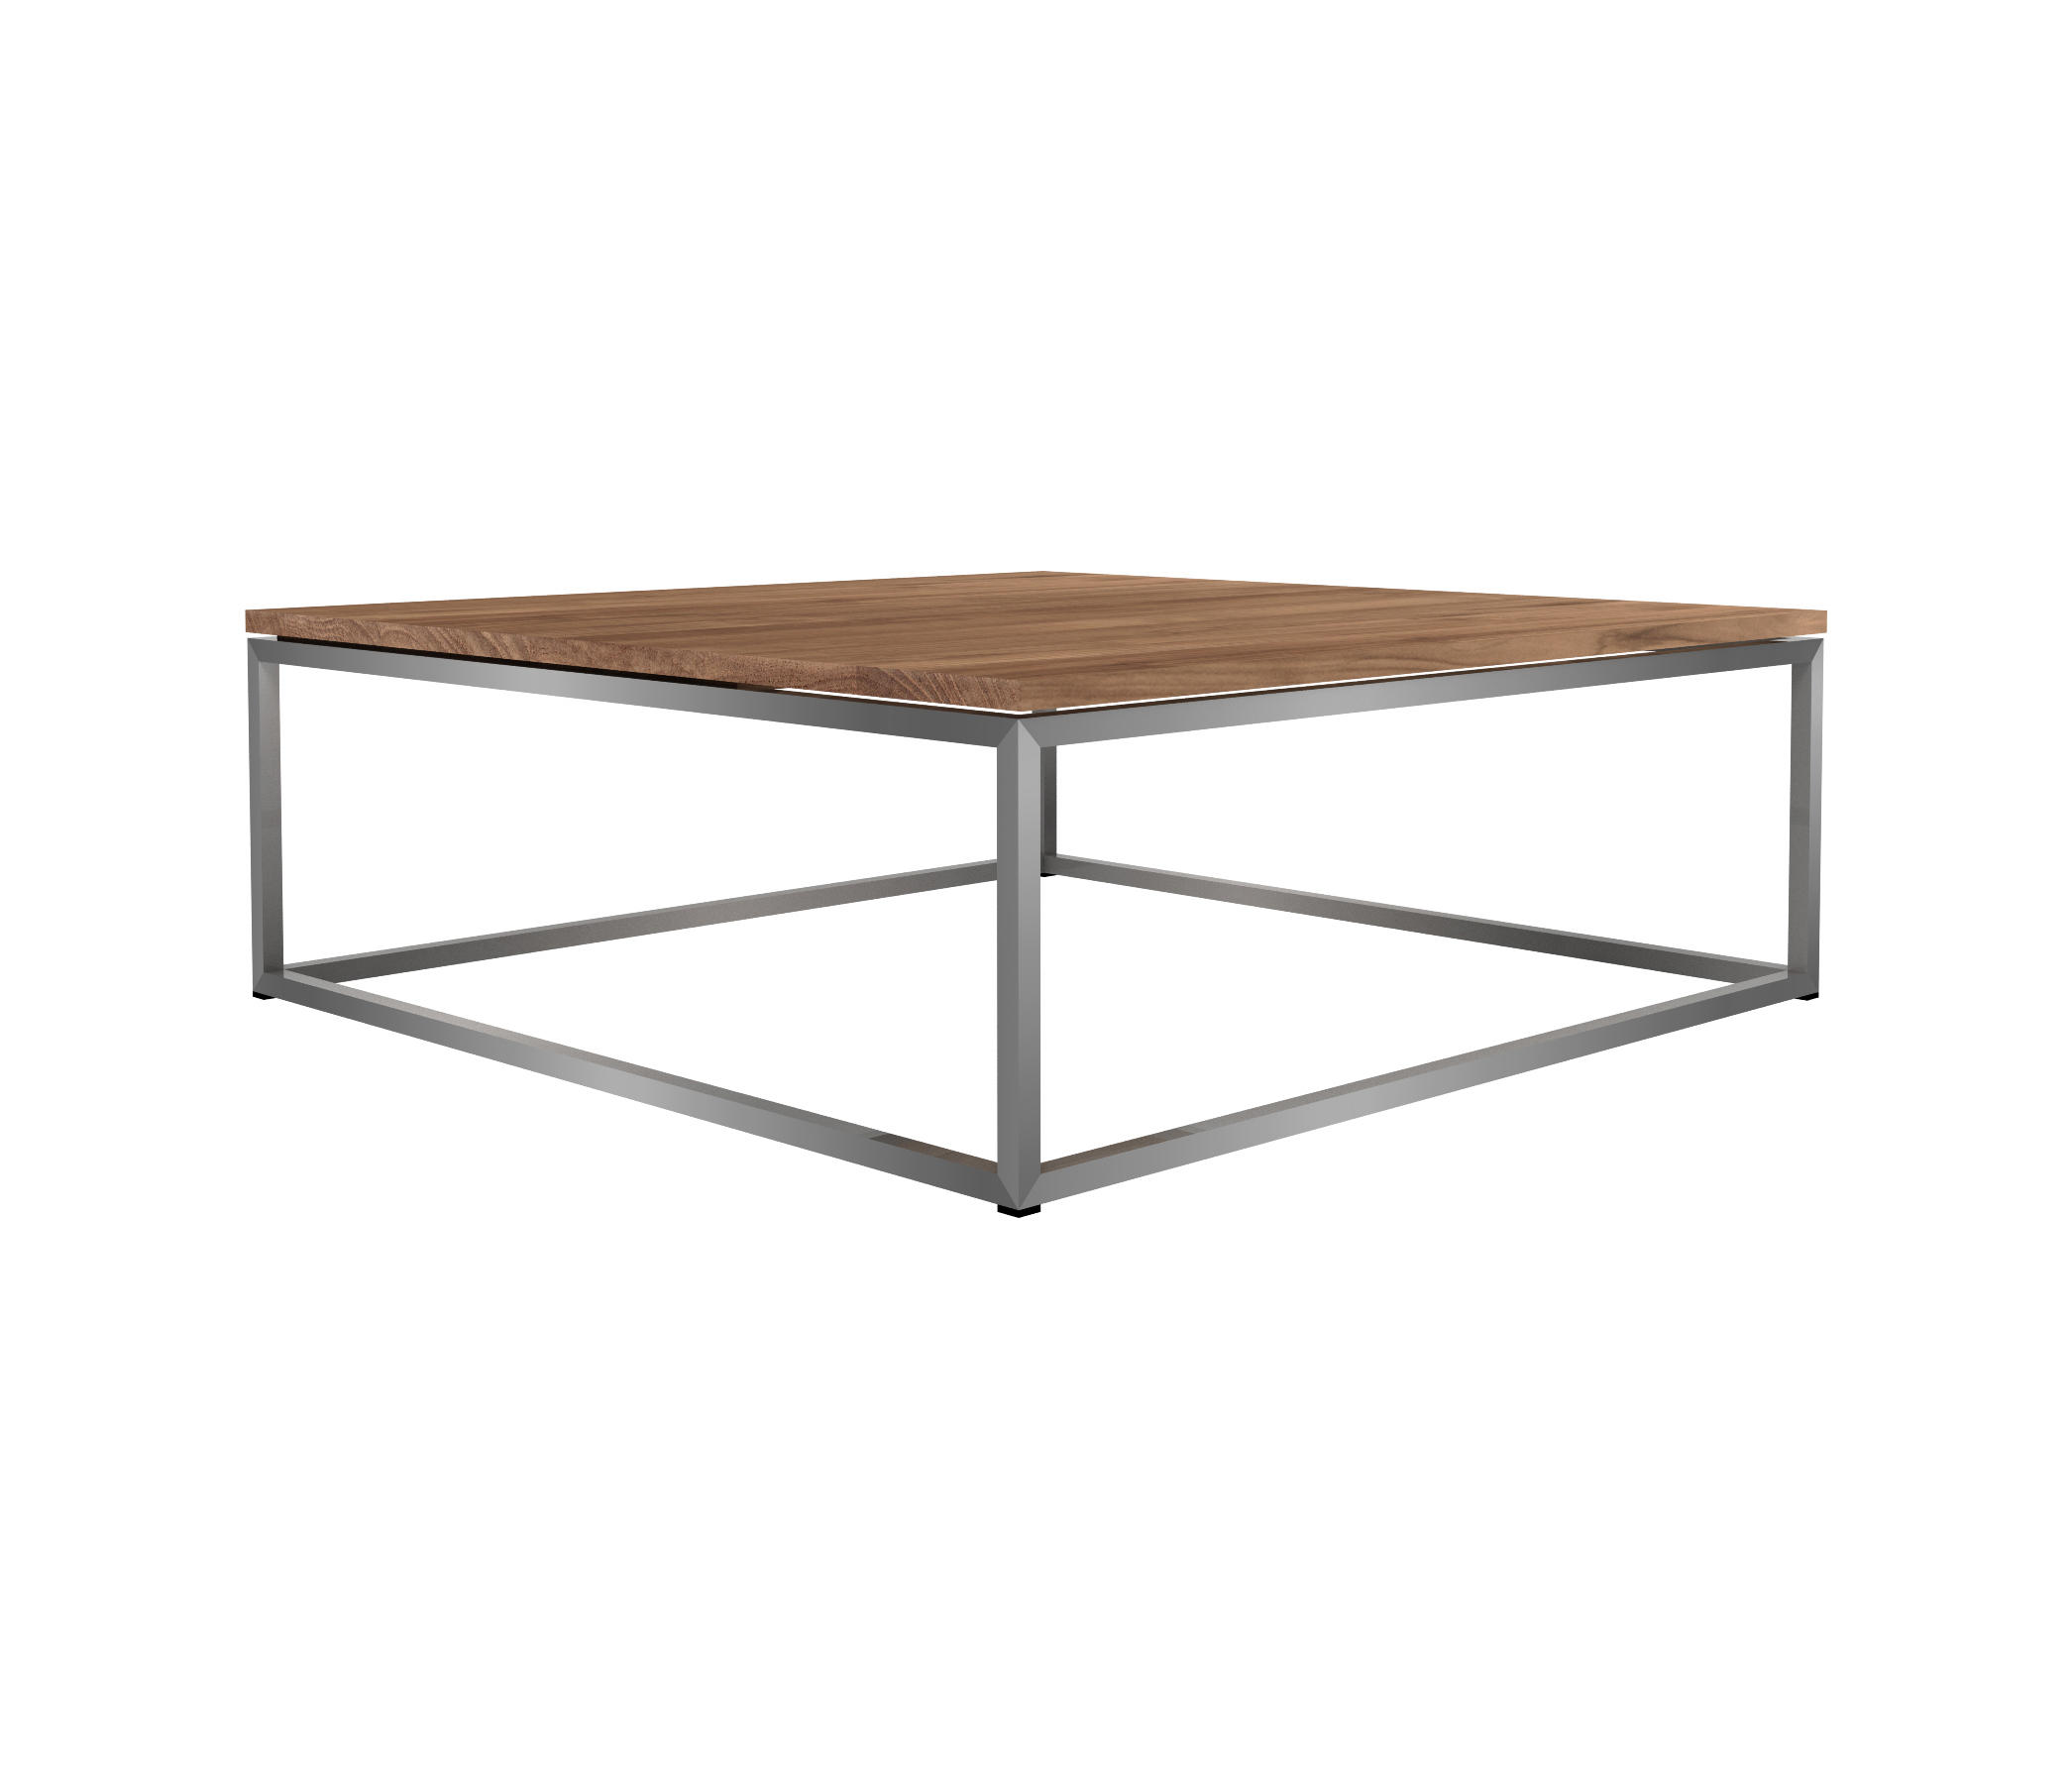 TEAK THIN COFFEE TABLE Lounge tables from Ethnicraft